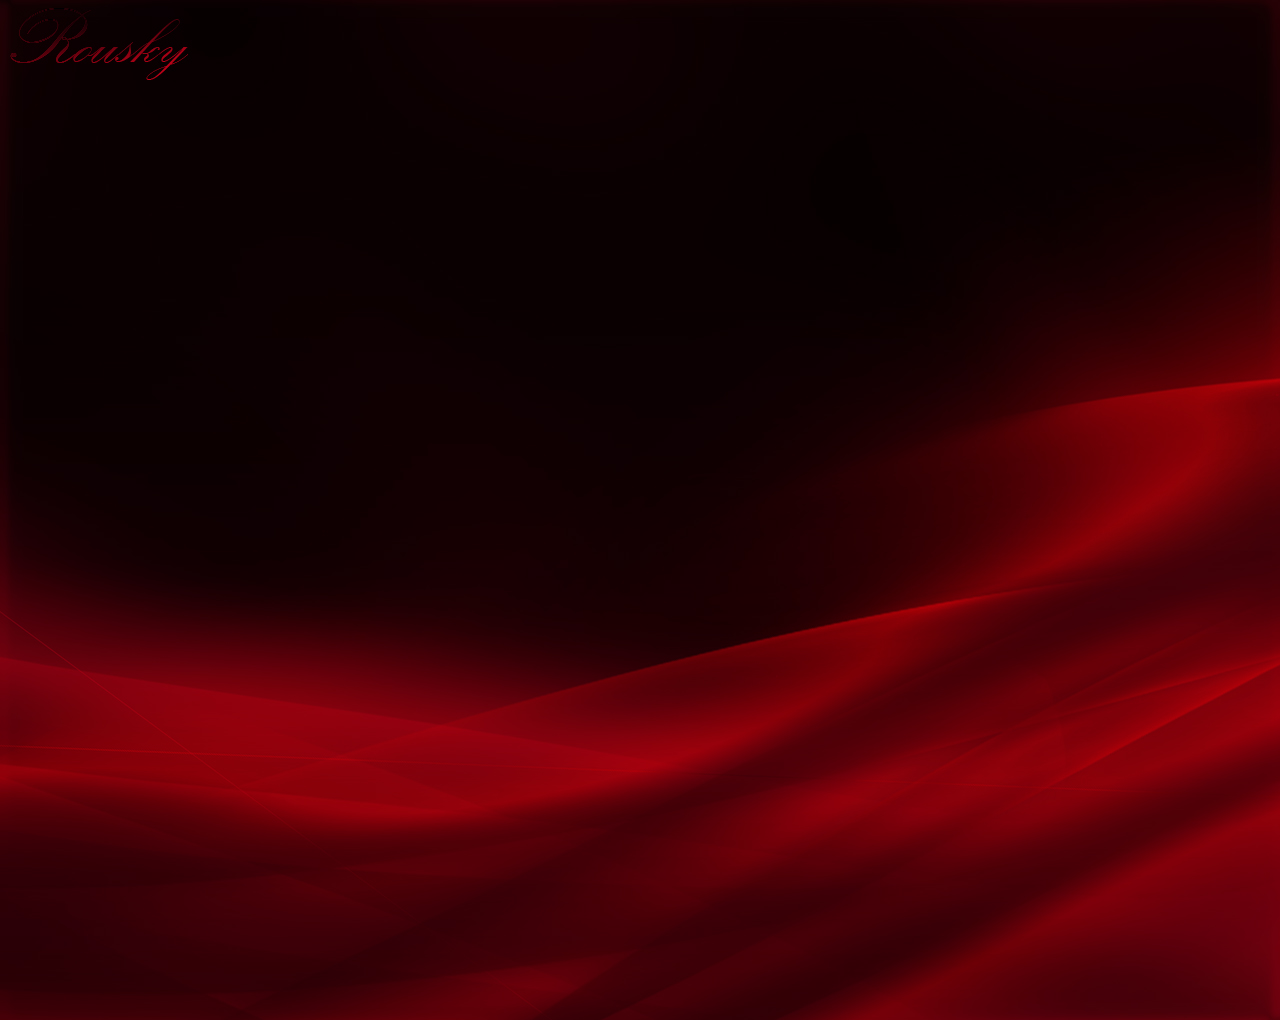 Red Abstract Wallpaper Background | 214